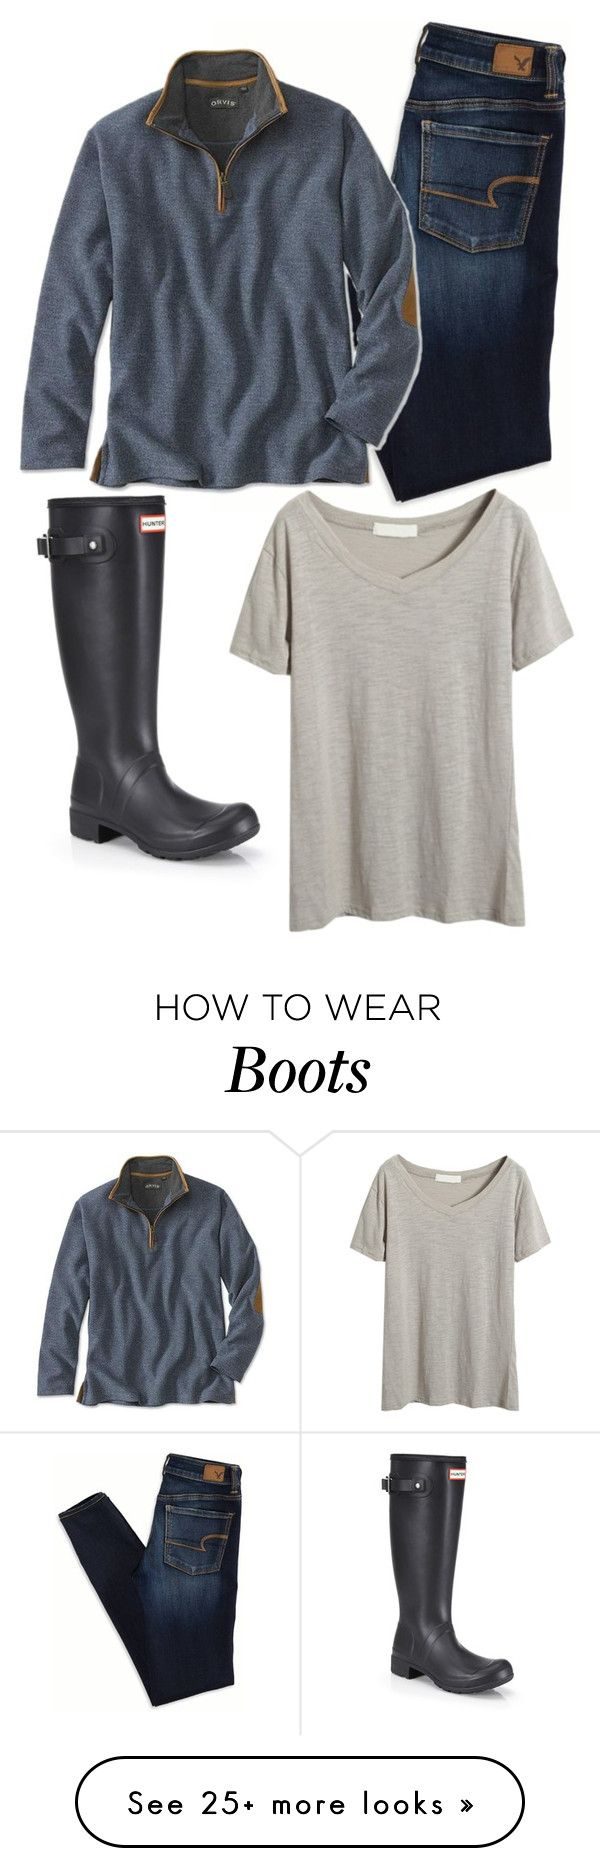 """❤️ Hunter boots!"" by camlinker on Polyvore featuring Hunter and American Eagle Outfitters"